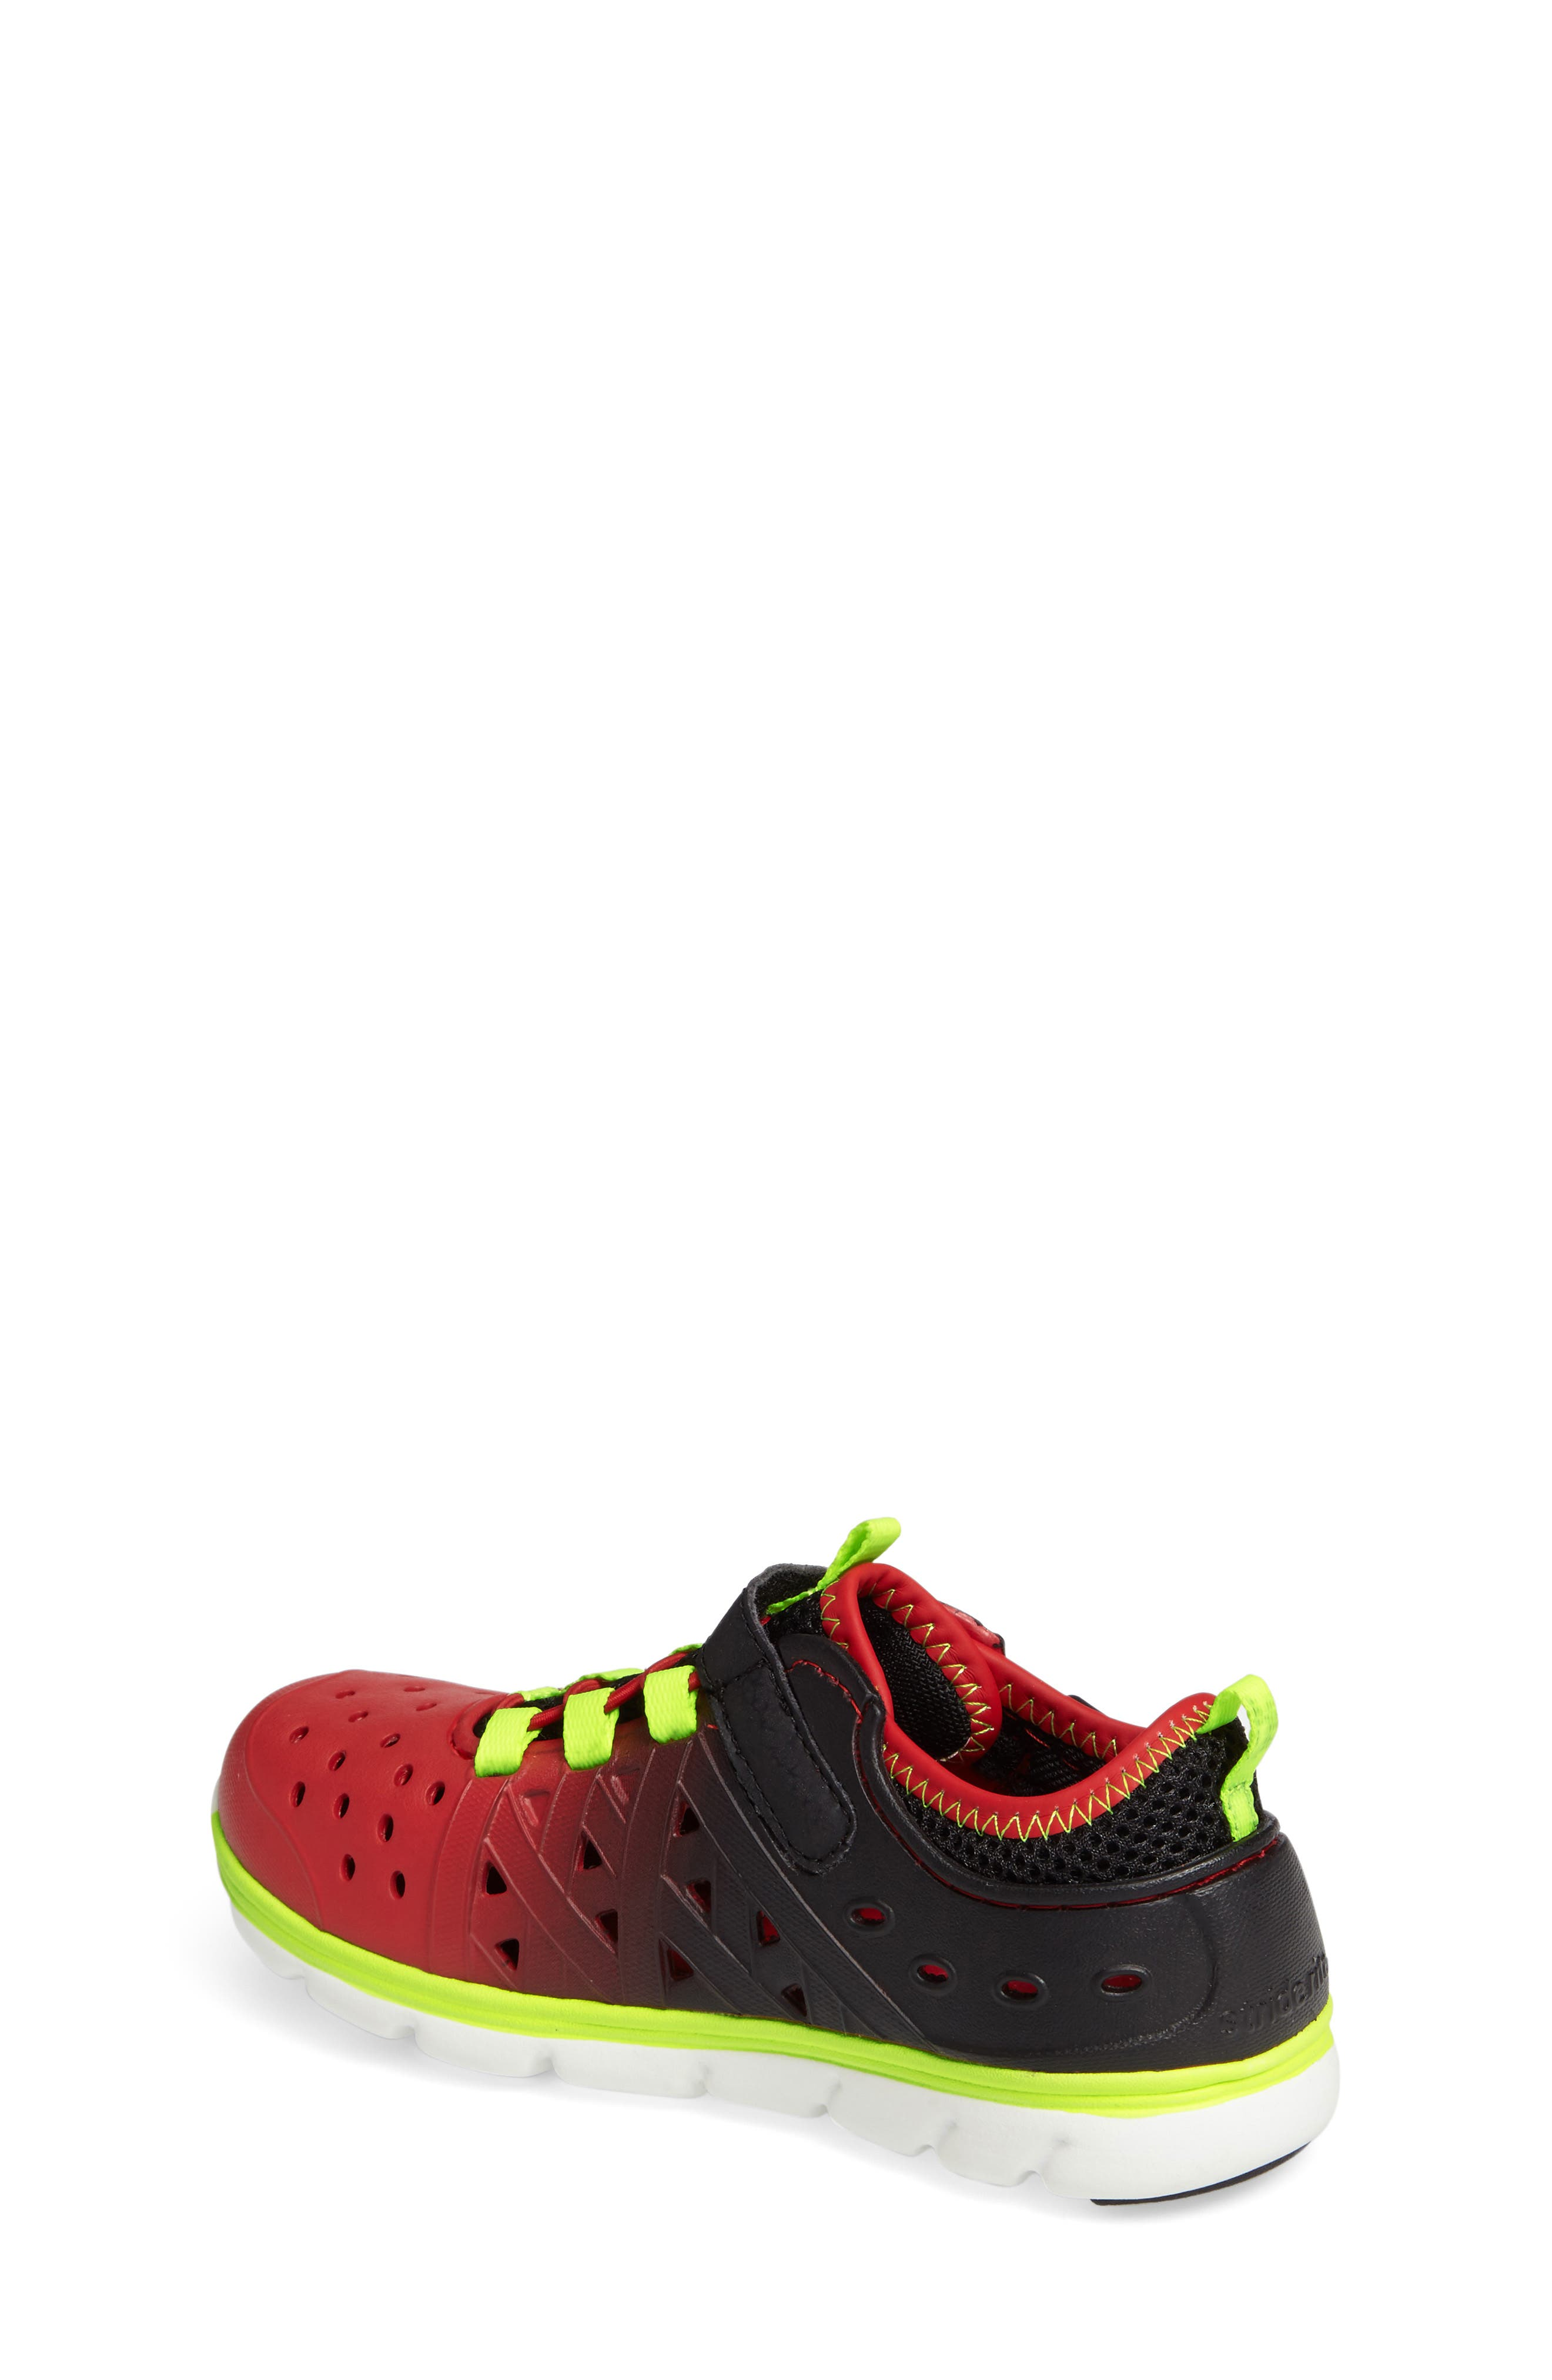 Made2Play<sup>®</sup> Phibian Sneaker,                             Alternate thumbnail 2, color,                             001